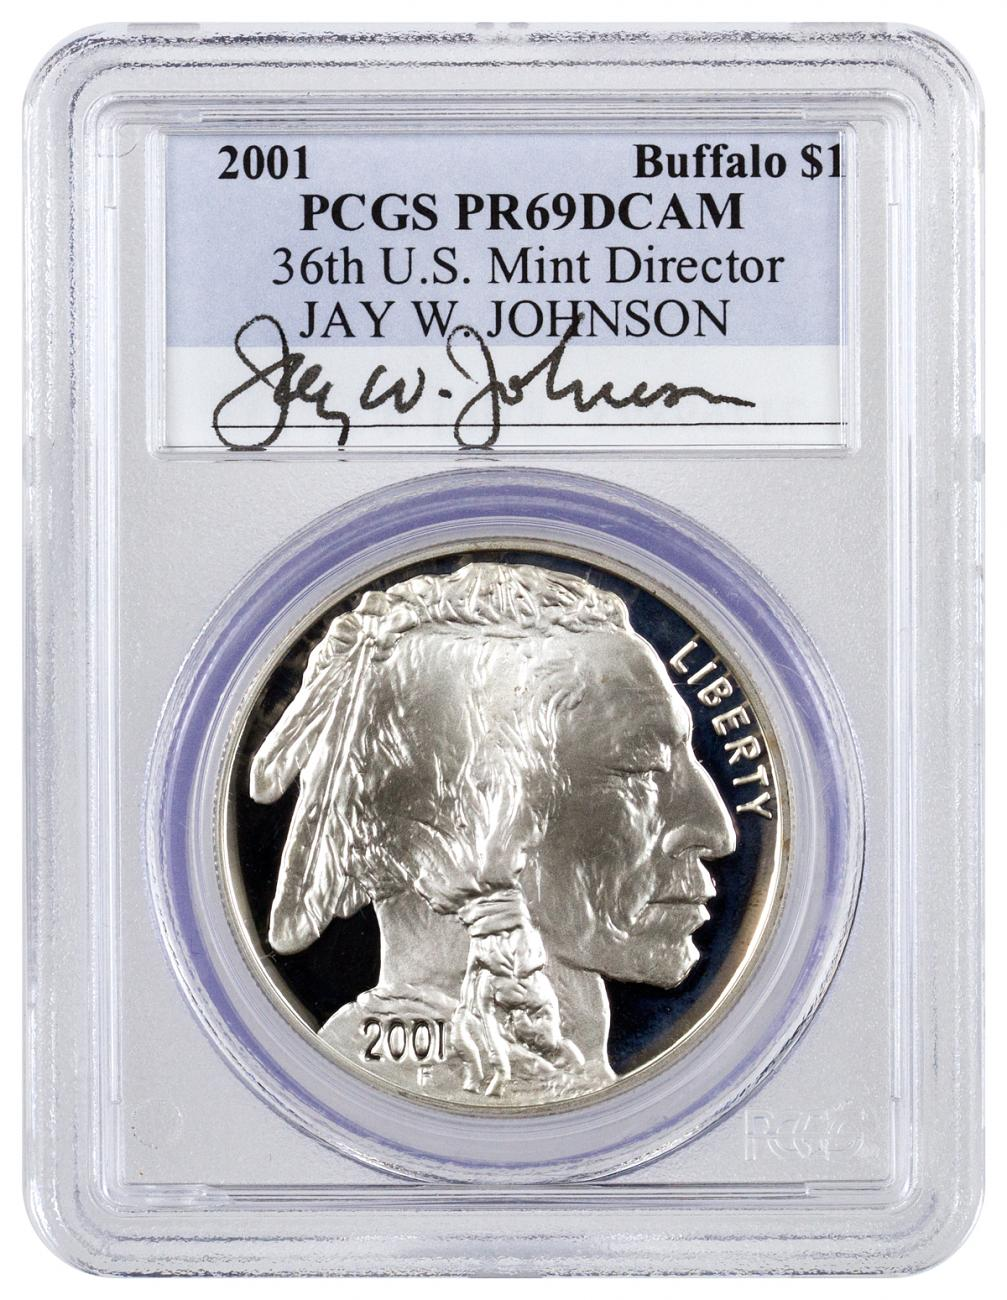 2001-P $1 Proof Silver Buffalo Commemorative - PCGS PR69 DCAM (Jay Johnson Signed Label)